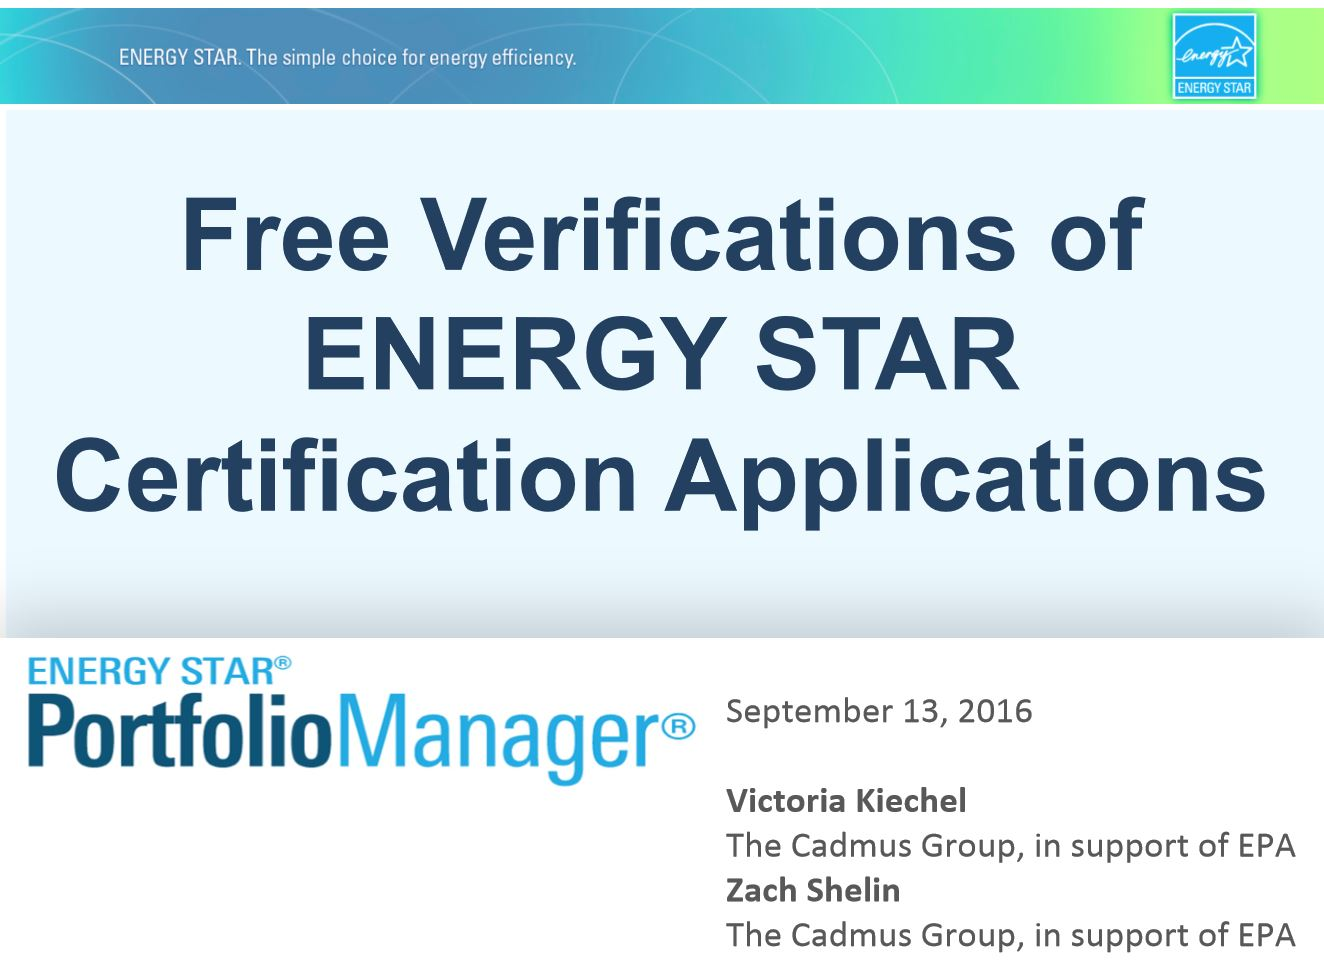 Free Verification of ENERGY STAR Certification Applications presentation